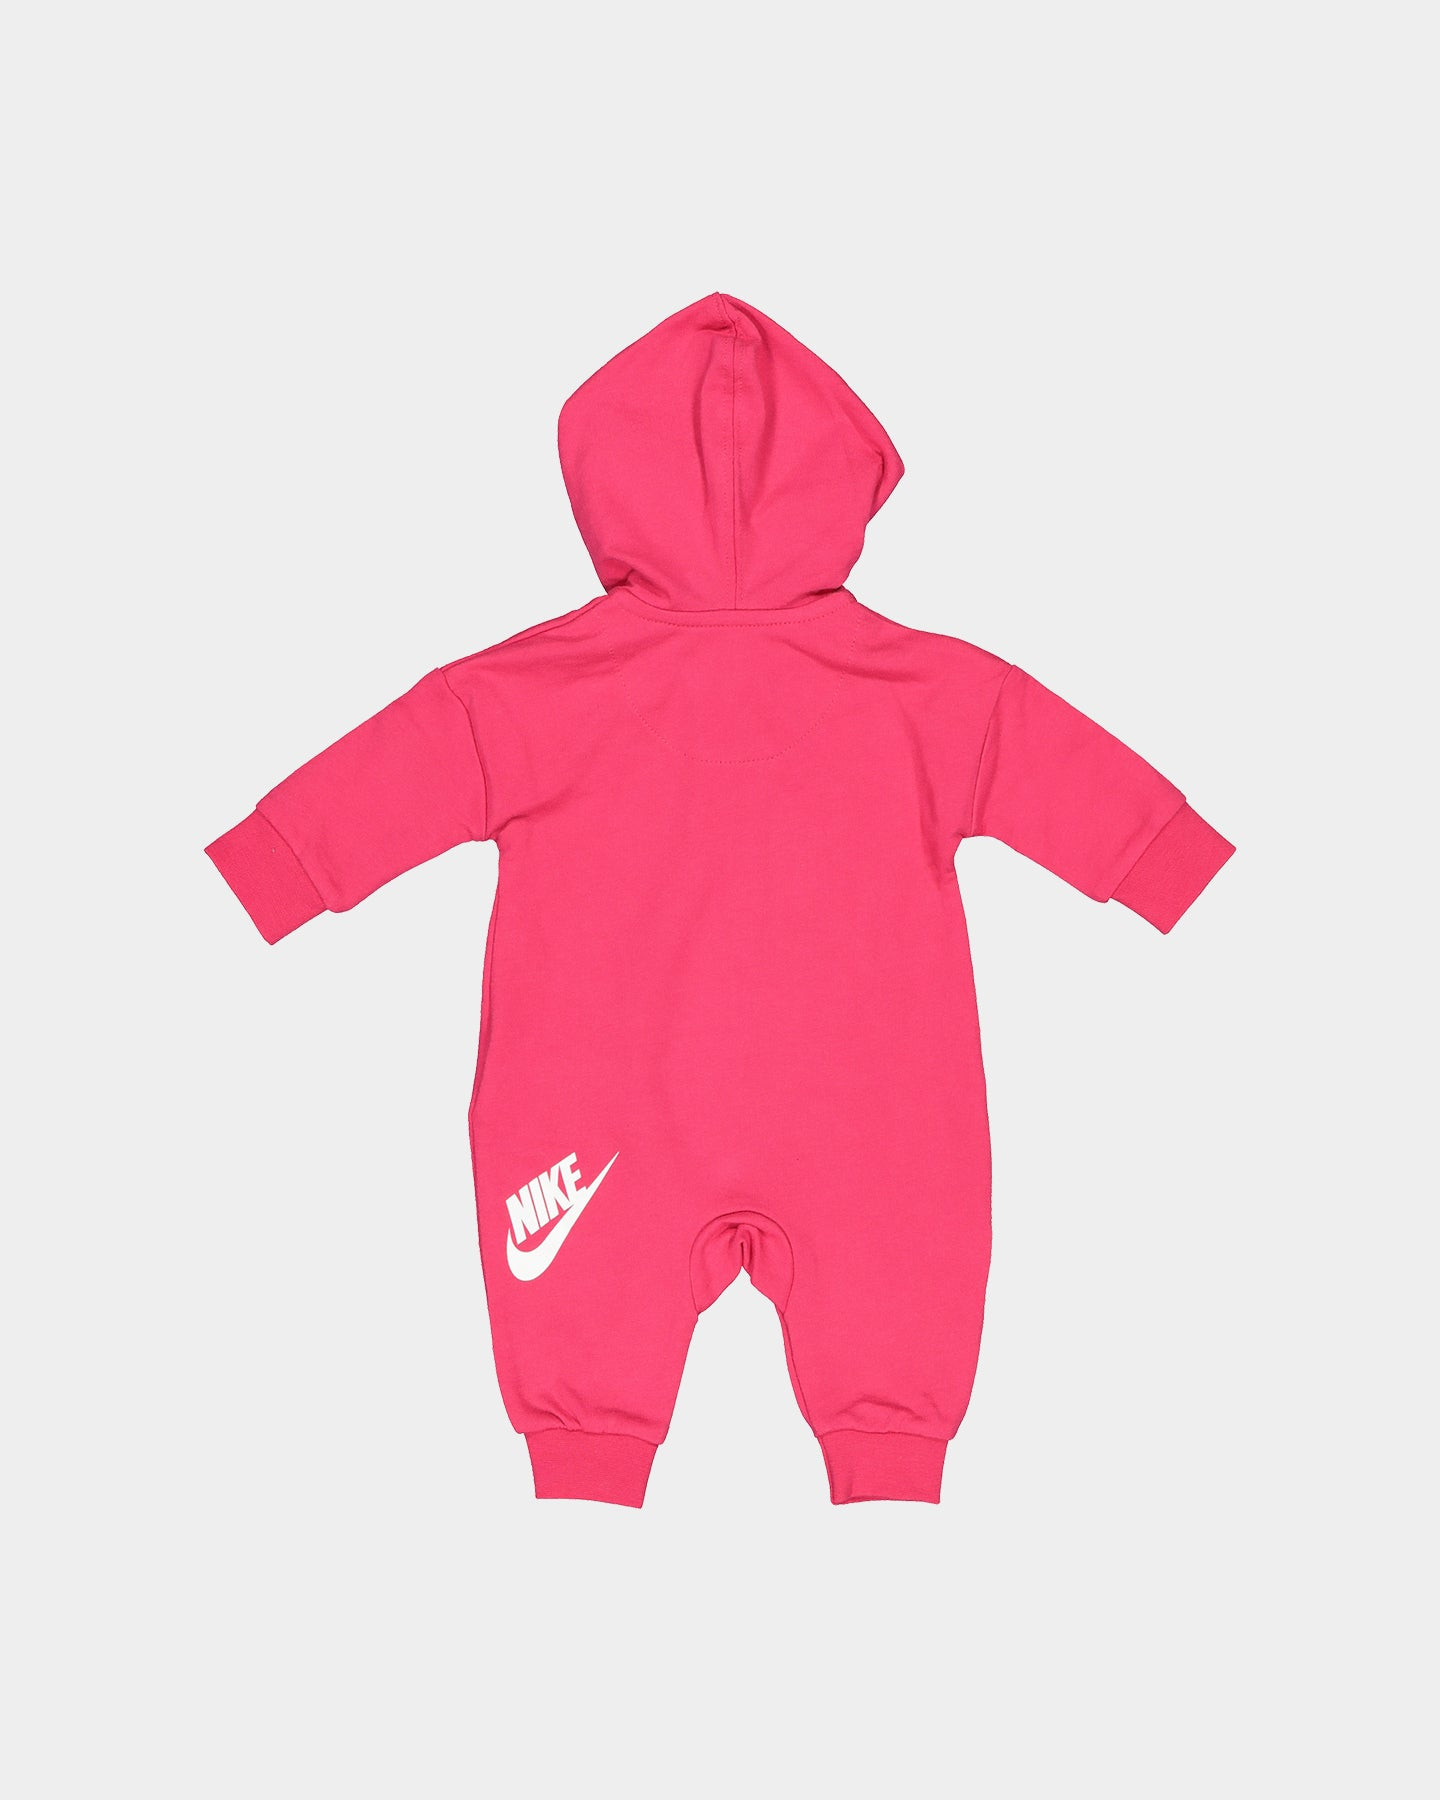 6M 9-12M  NWT Nike Futura Infant Coverall Outfit Size  0-3M 9M 3-6M 6-9M